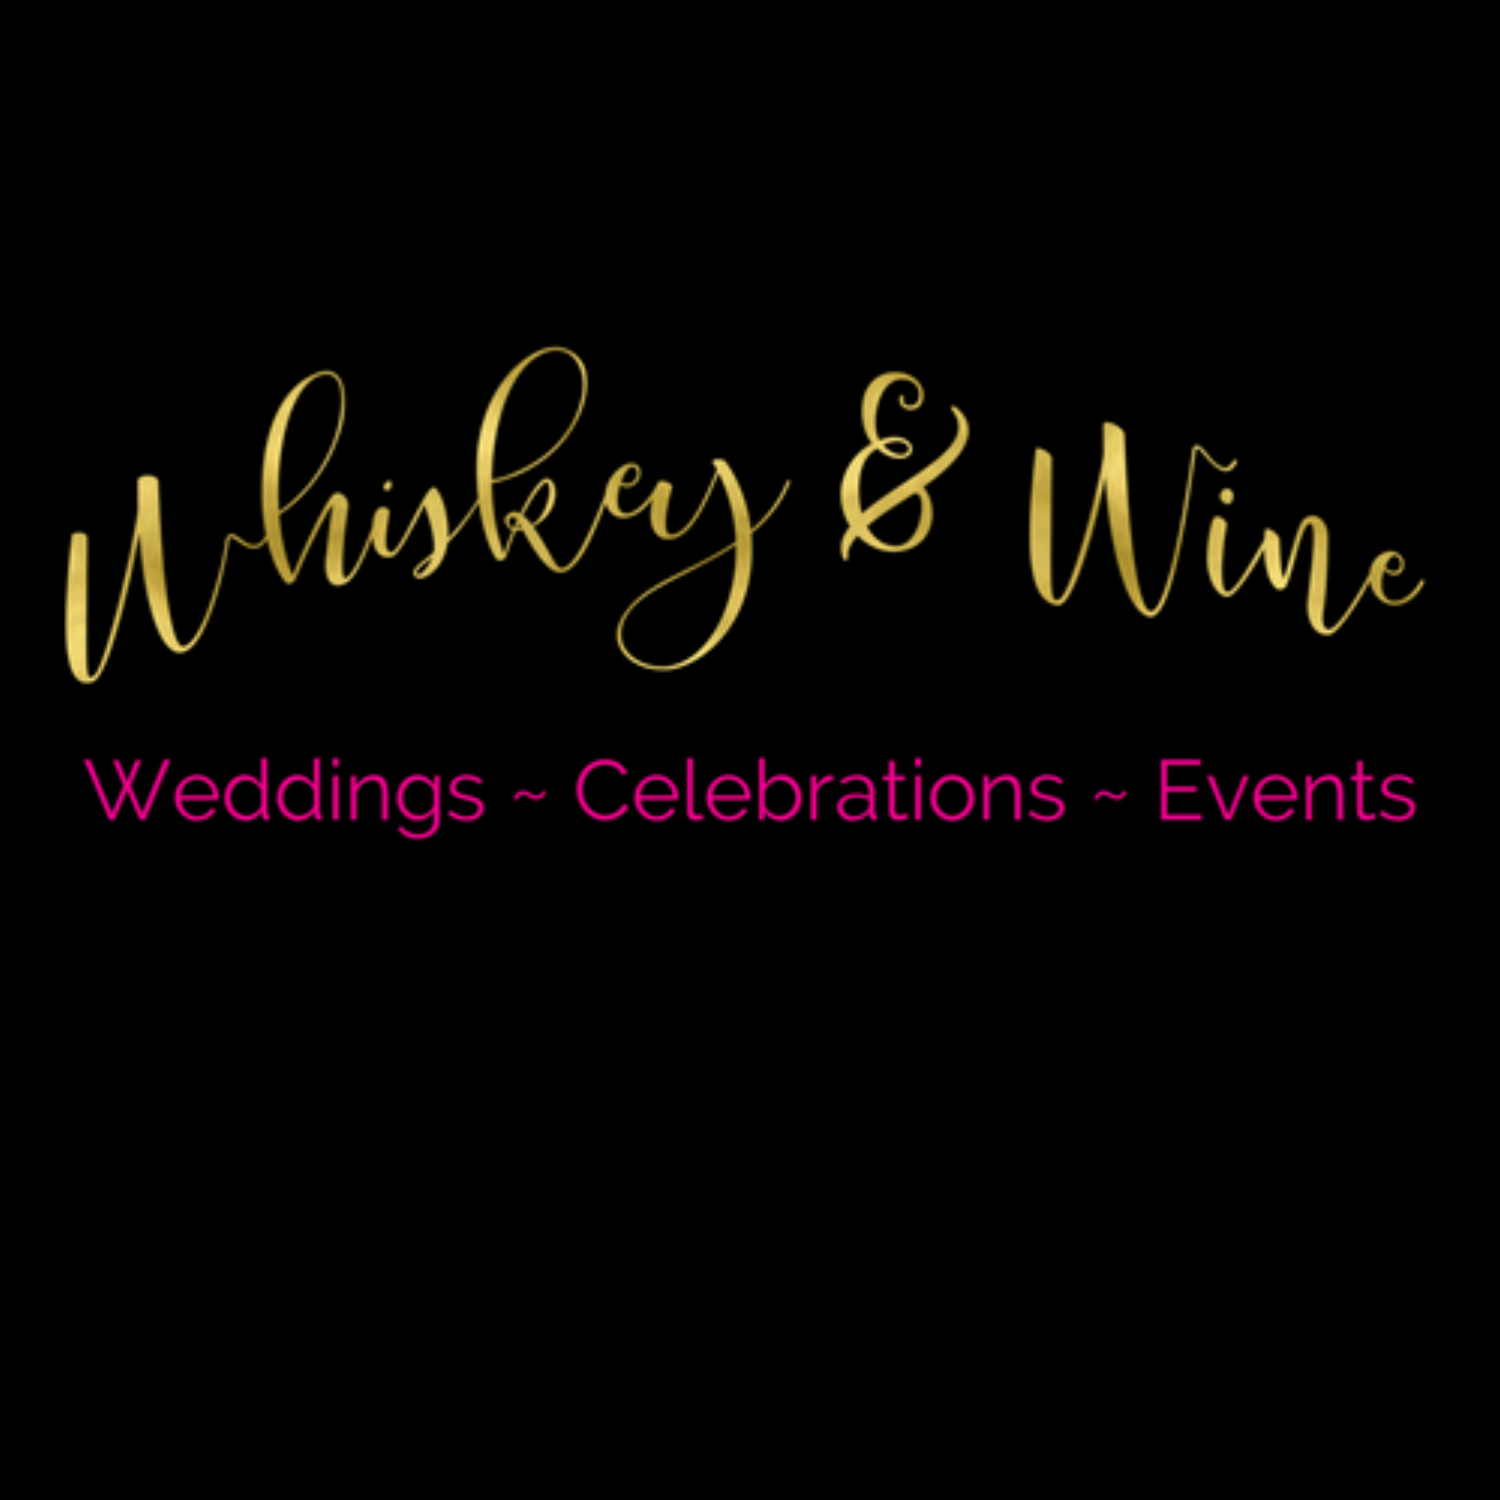 Wedding and Event Planner in the Hudson Valley, NY